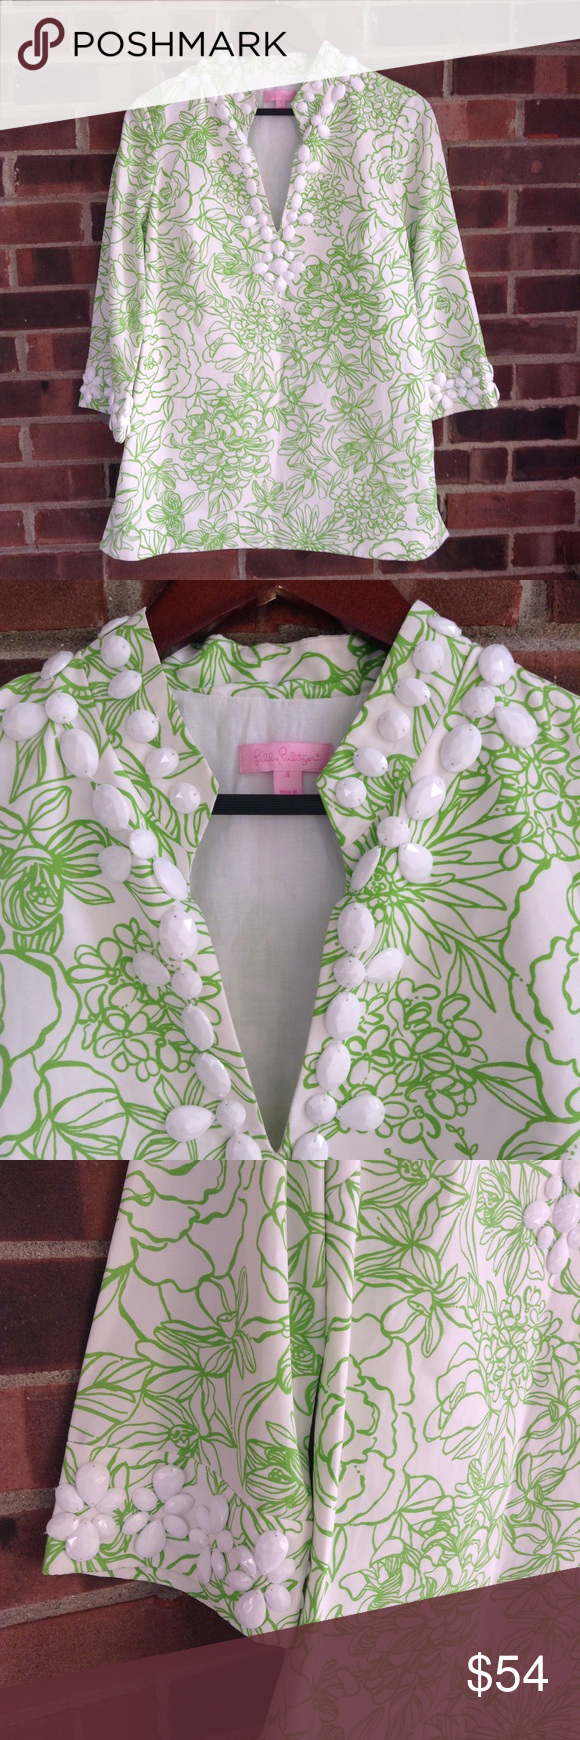 4d180ea9446254 NWOT Lilly Pulitzer Newbury caftan tunic with bead Brand new, never worn,  this stunning Lilly Pulitzer Newbury tunic in